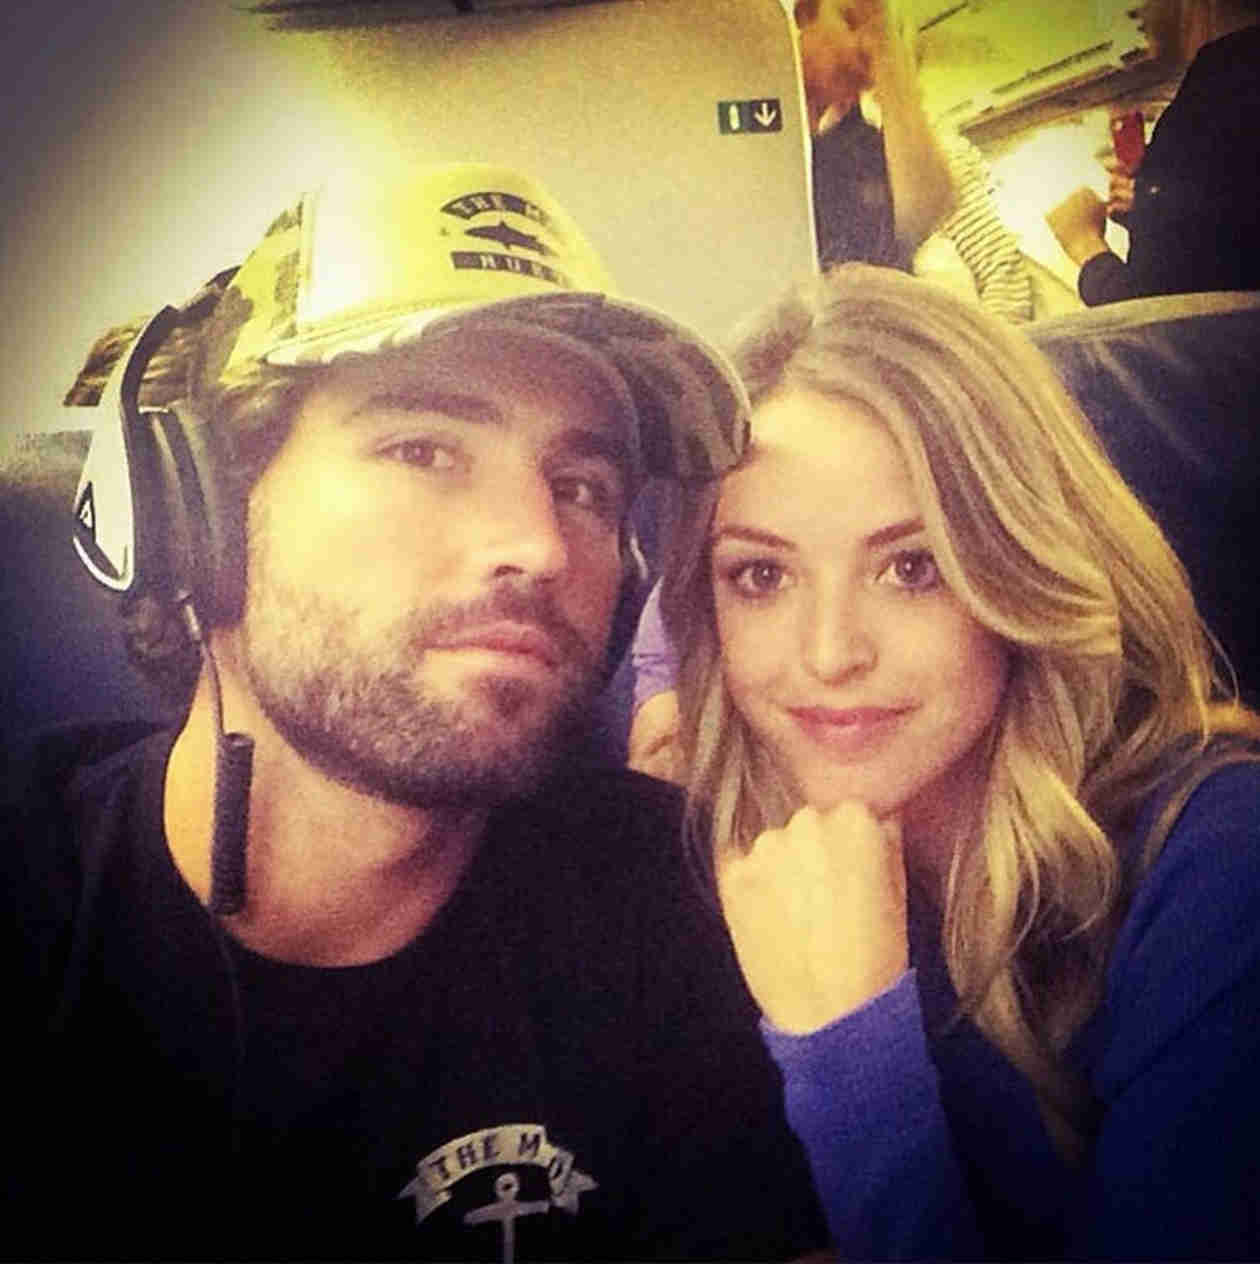 Brody Jenner Has A New Model Girlfriend, Kaitlyn Carter